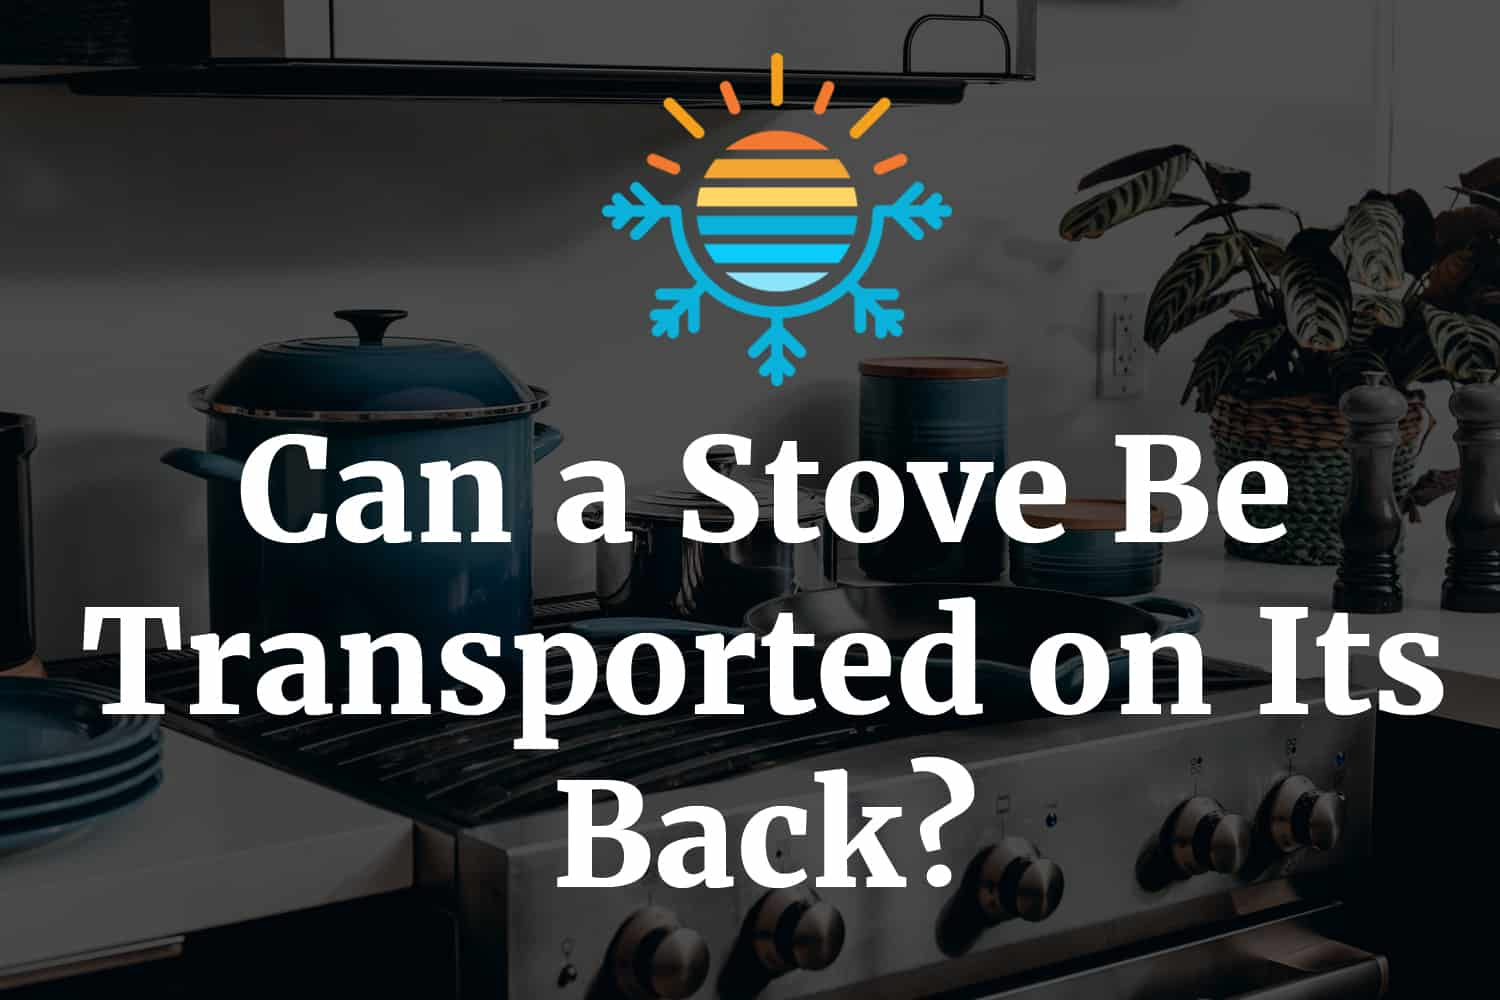 Can a stove be transported on its back